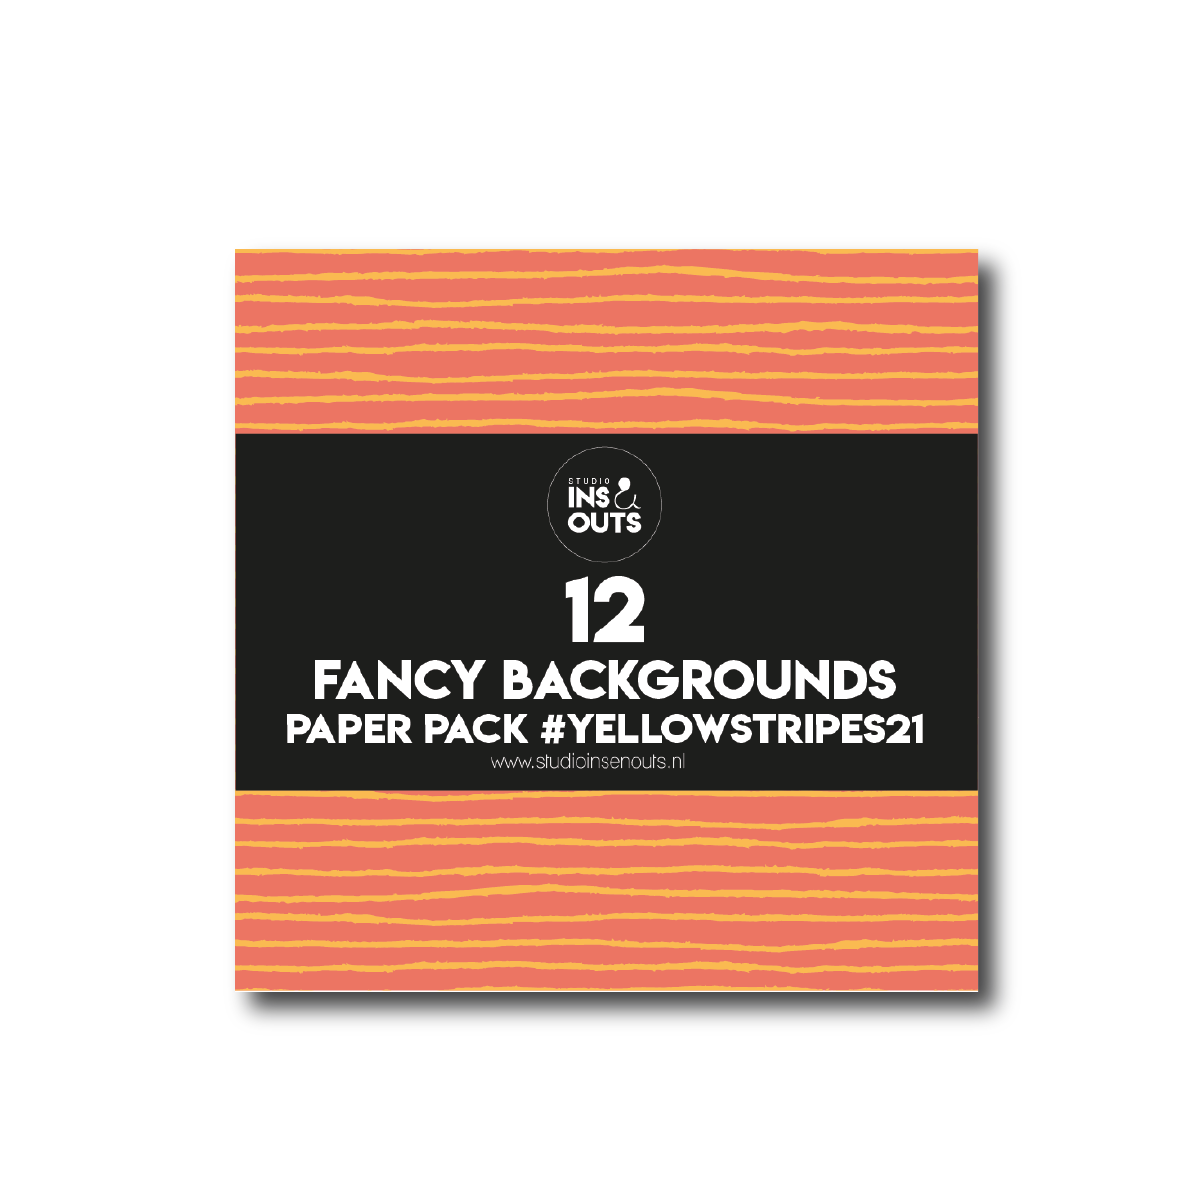 Paper Pack YELLOWSTRIPES'21